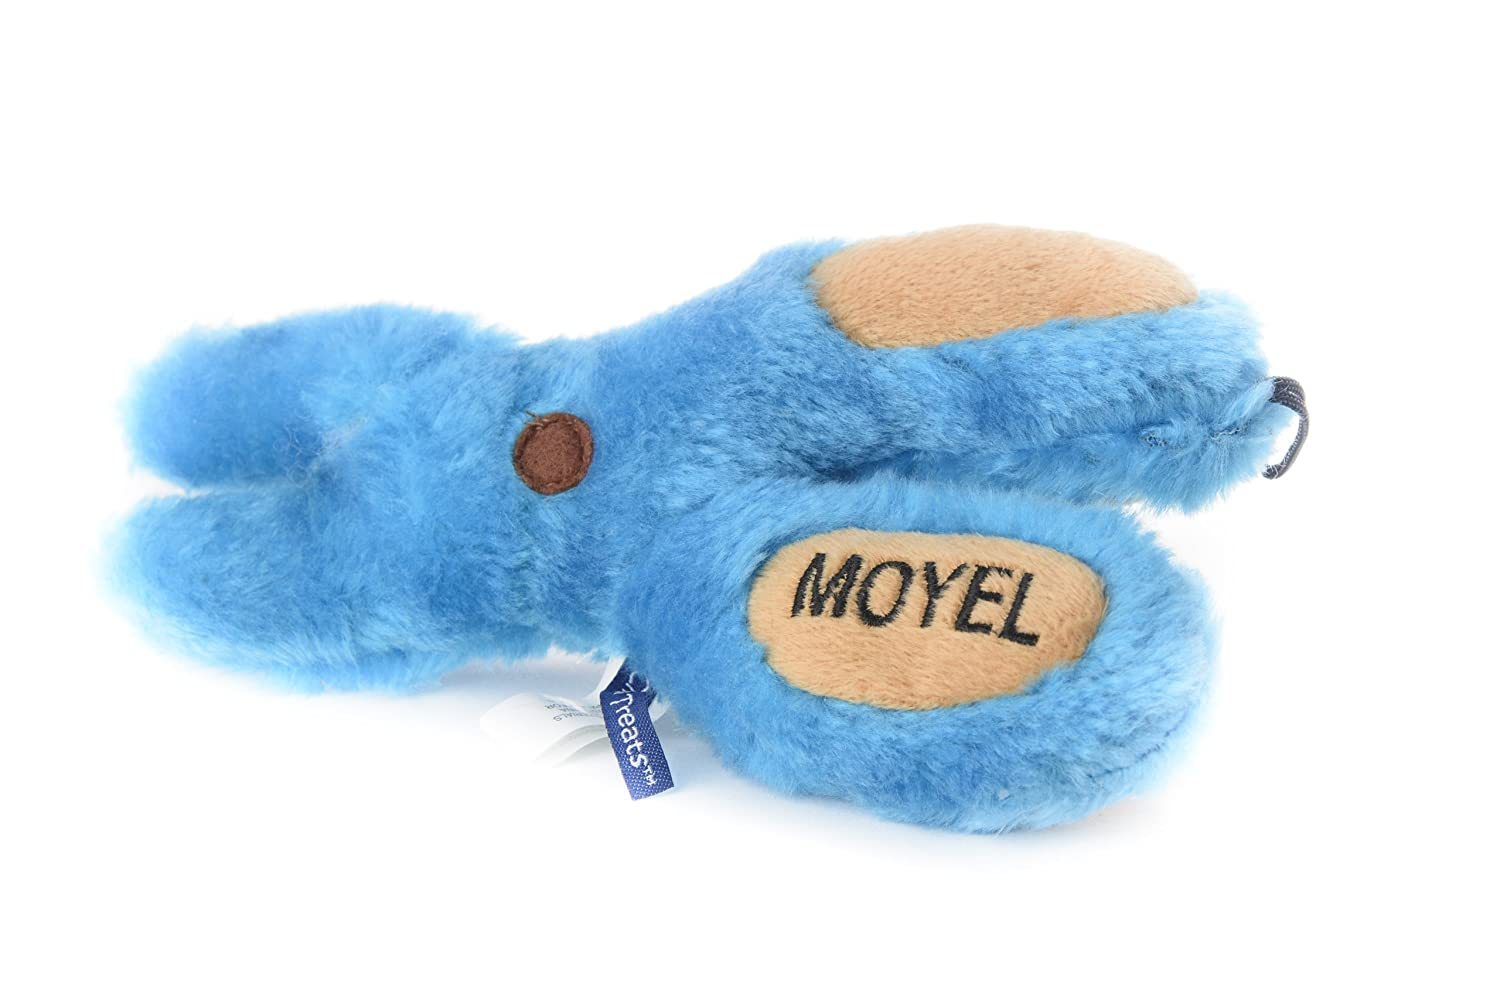 Copa Judaica Chewish Treat Moyle Scissor Squeaker Plush Dog Toy 8 by 7.5-Inch Multicolor